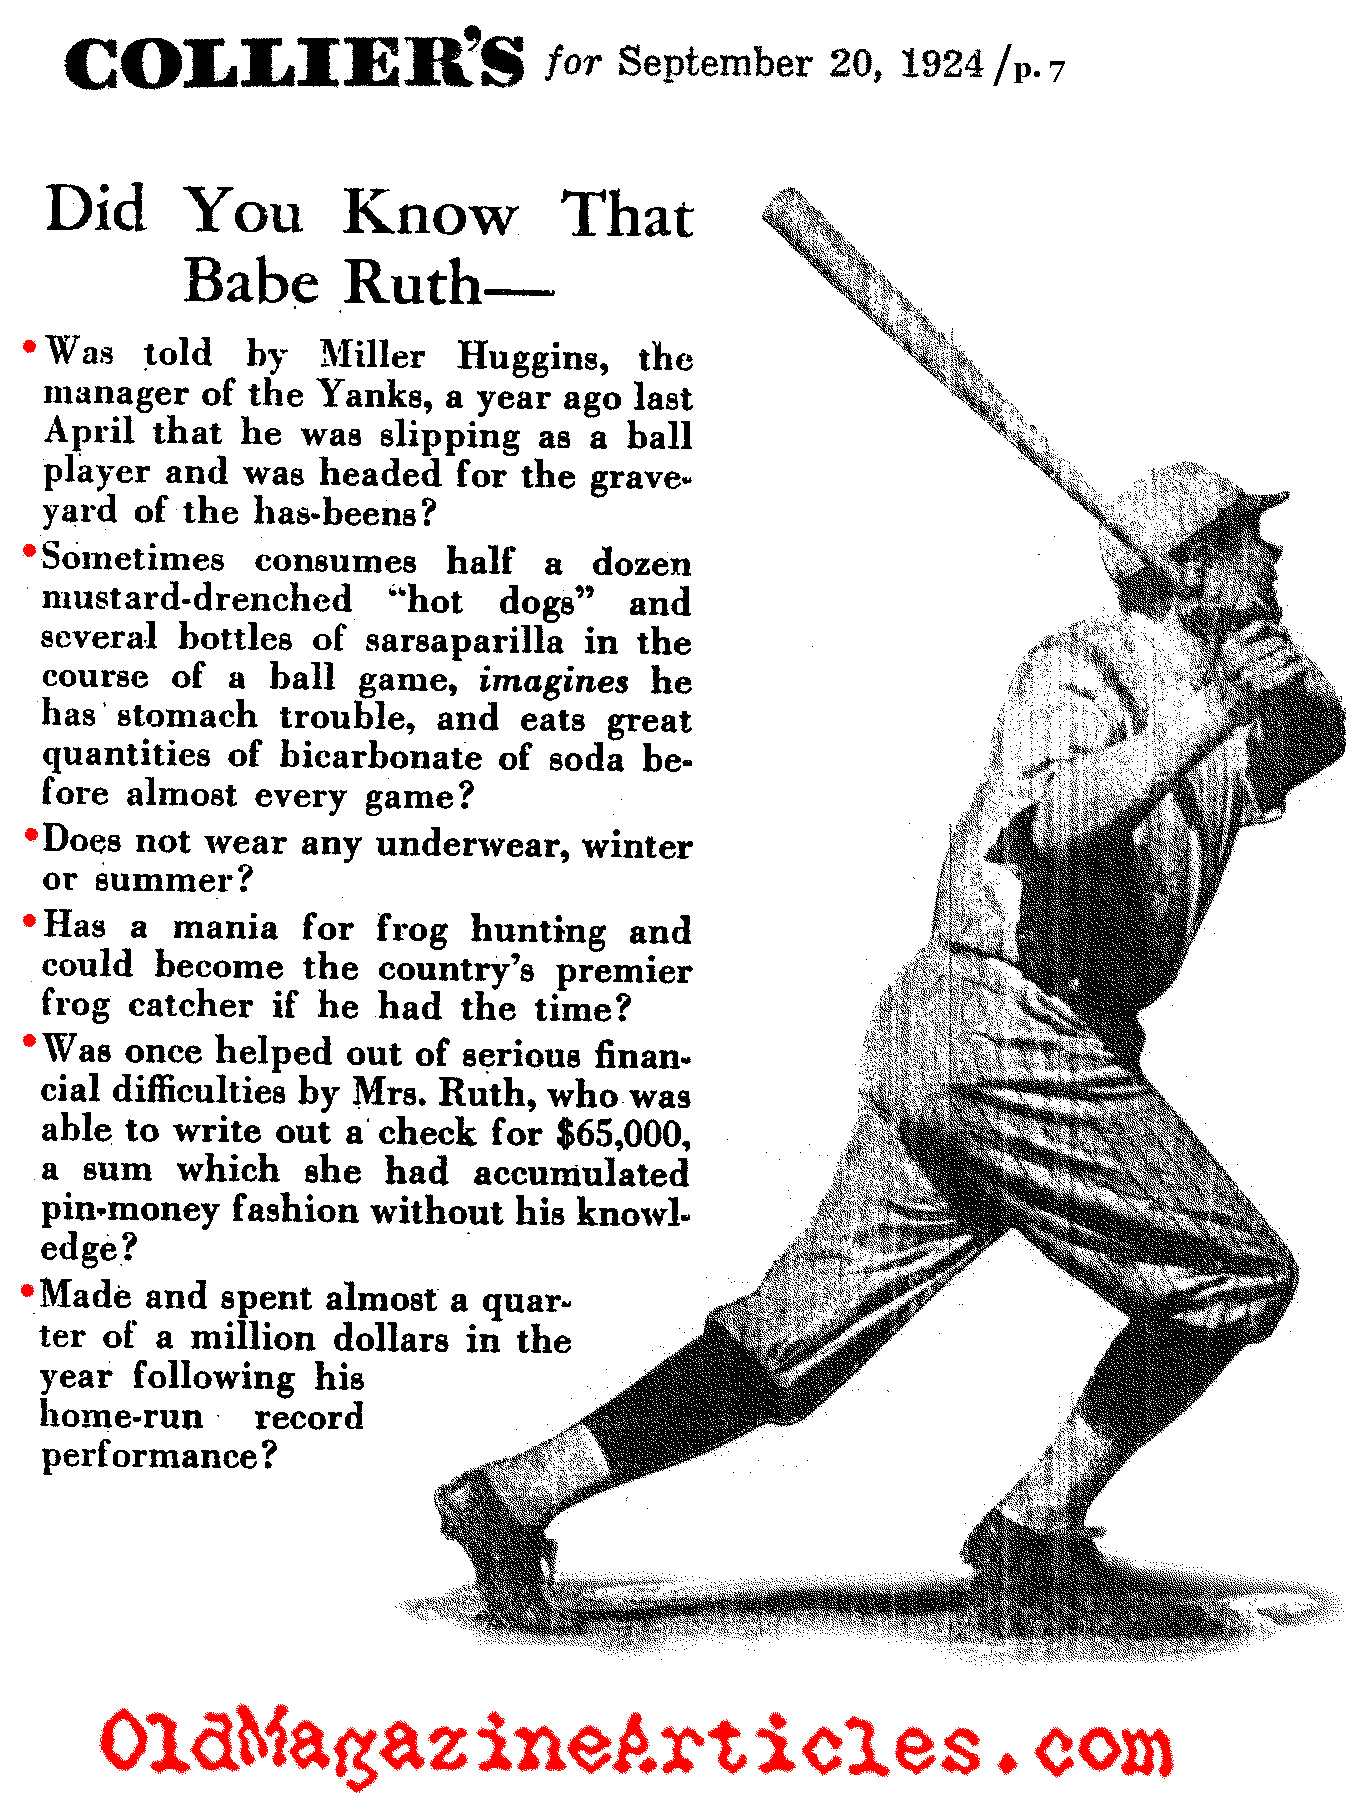 The Little Things That Made Babe Ruth (Colliers' Magazine, 1924)